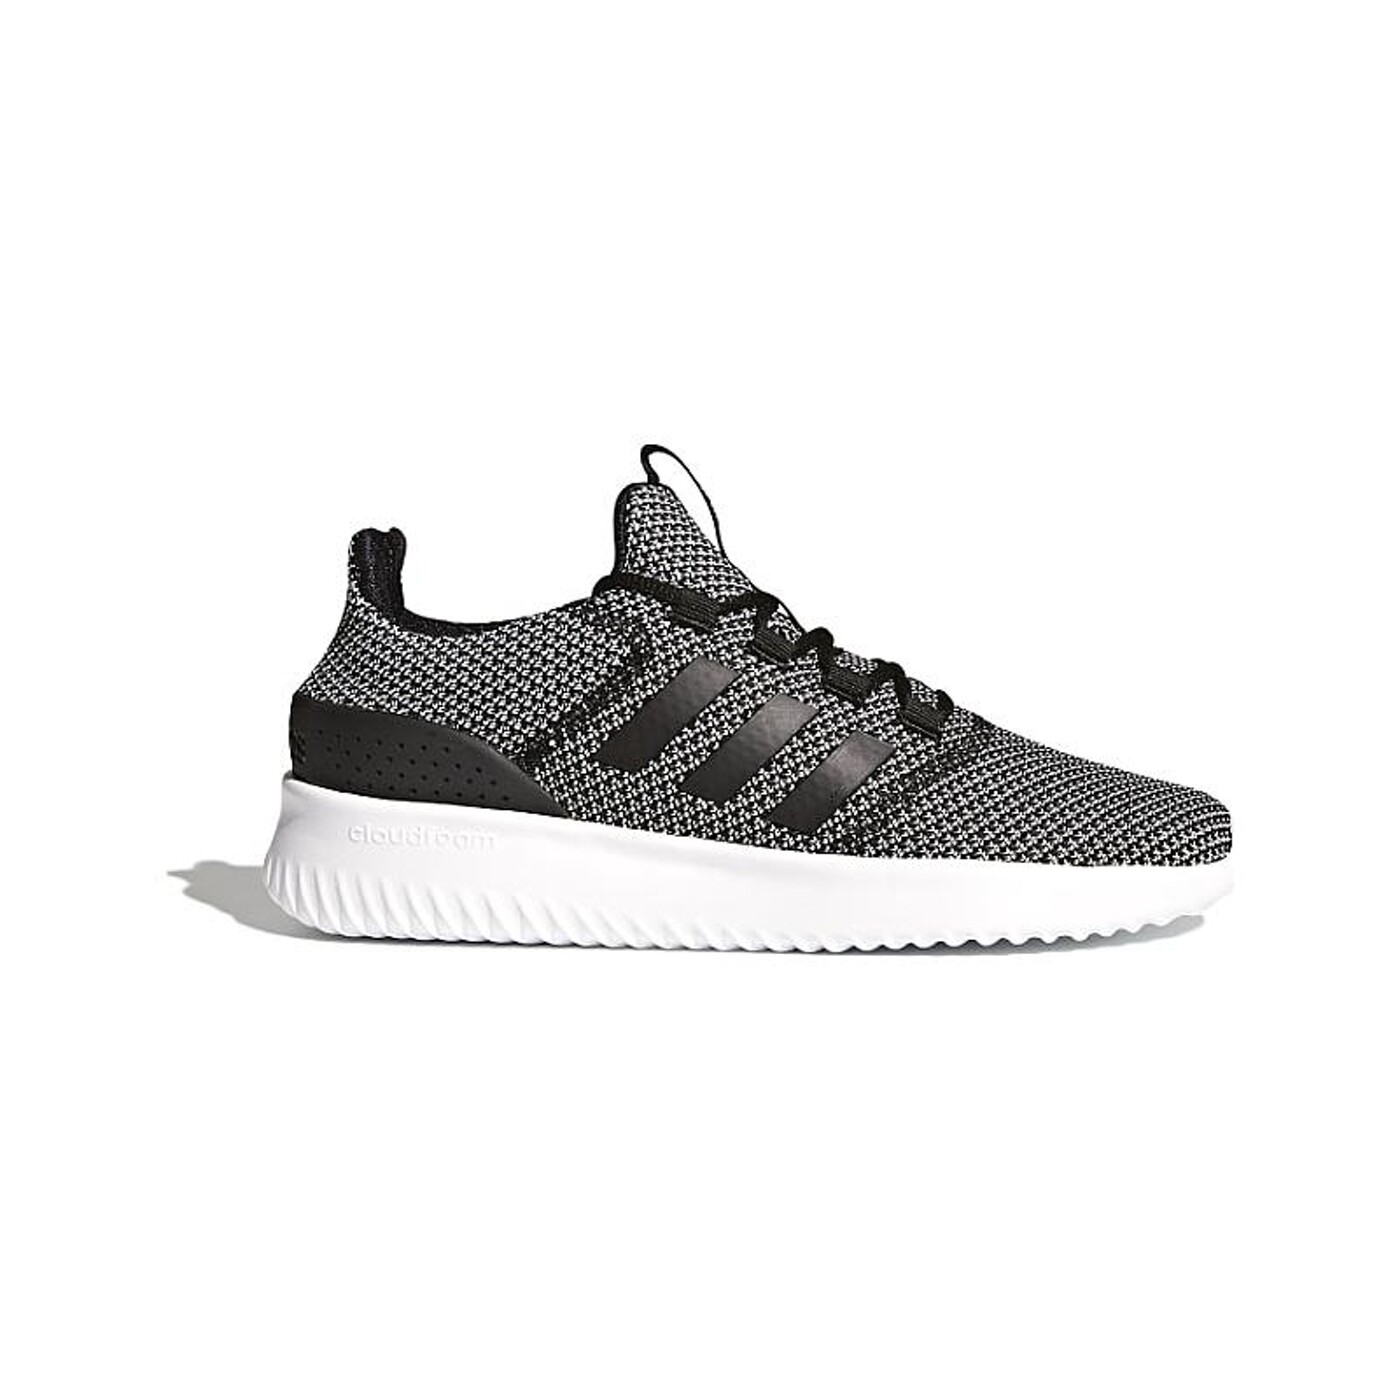 ADIDAS CLOUDFOAM ULTIMATE - Herren